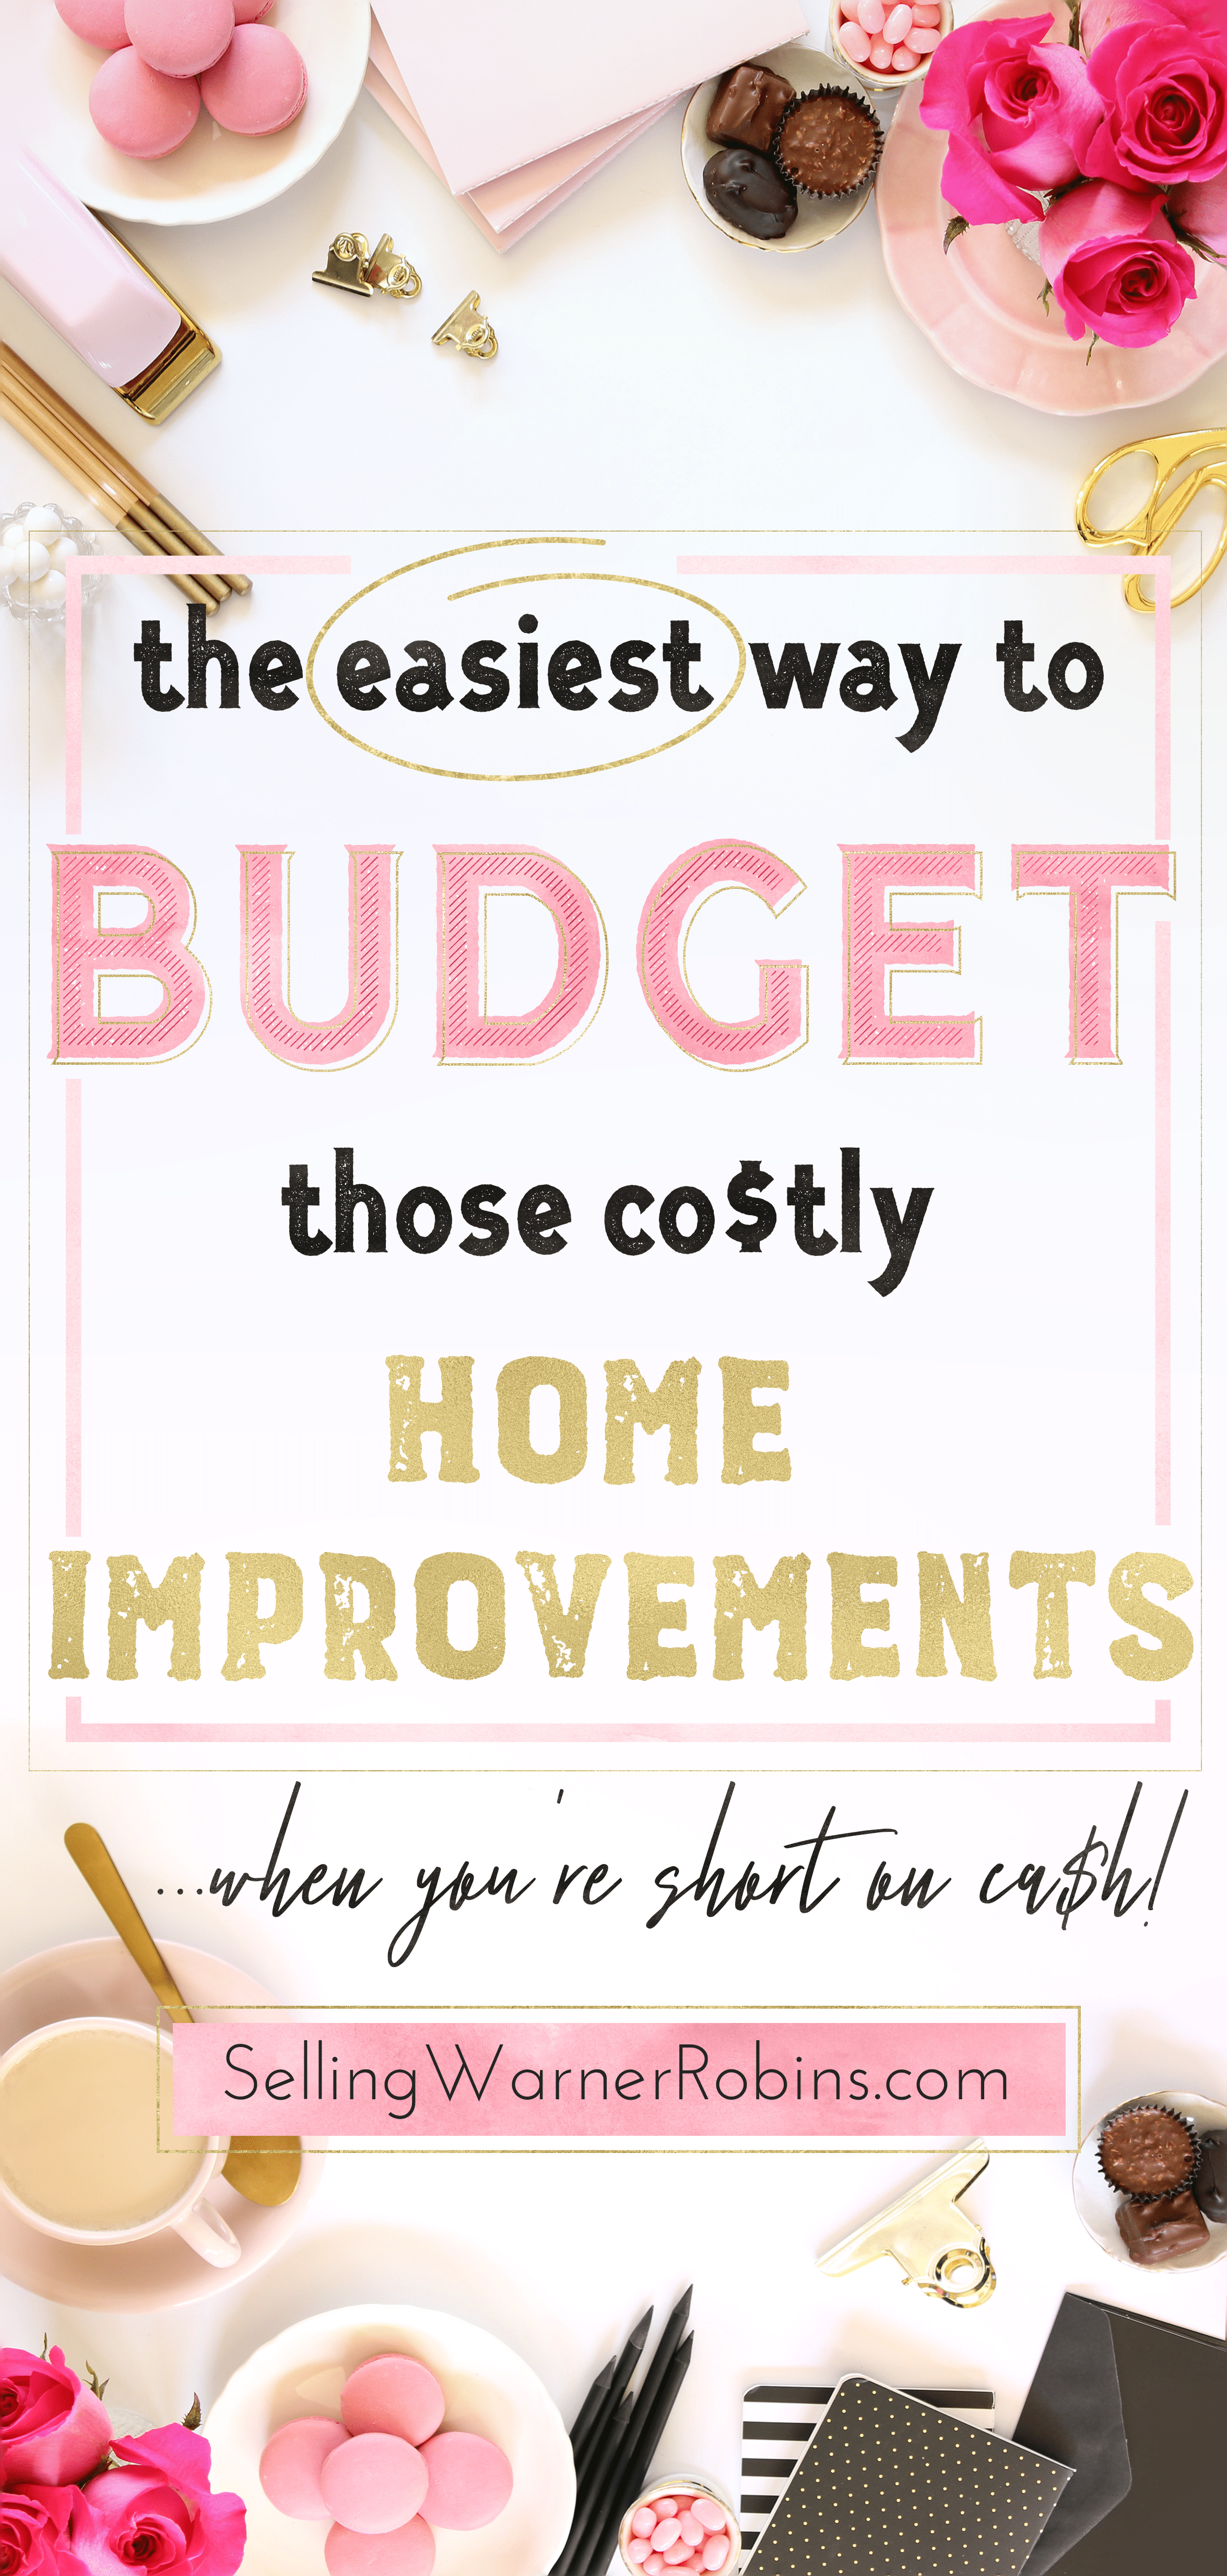 How to Budget Home Improvements